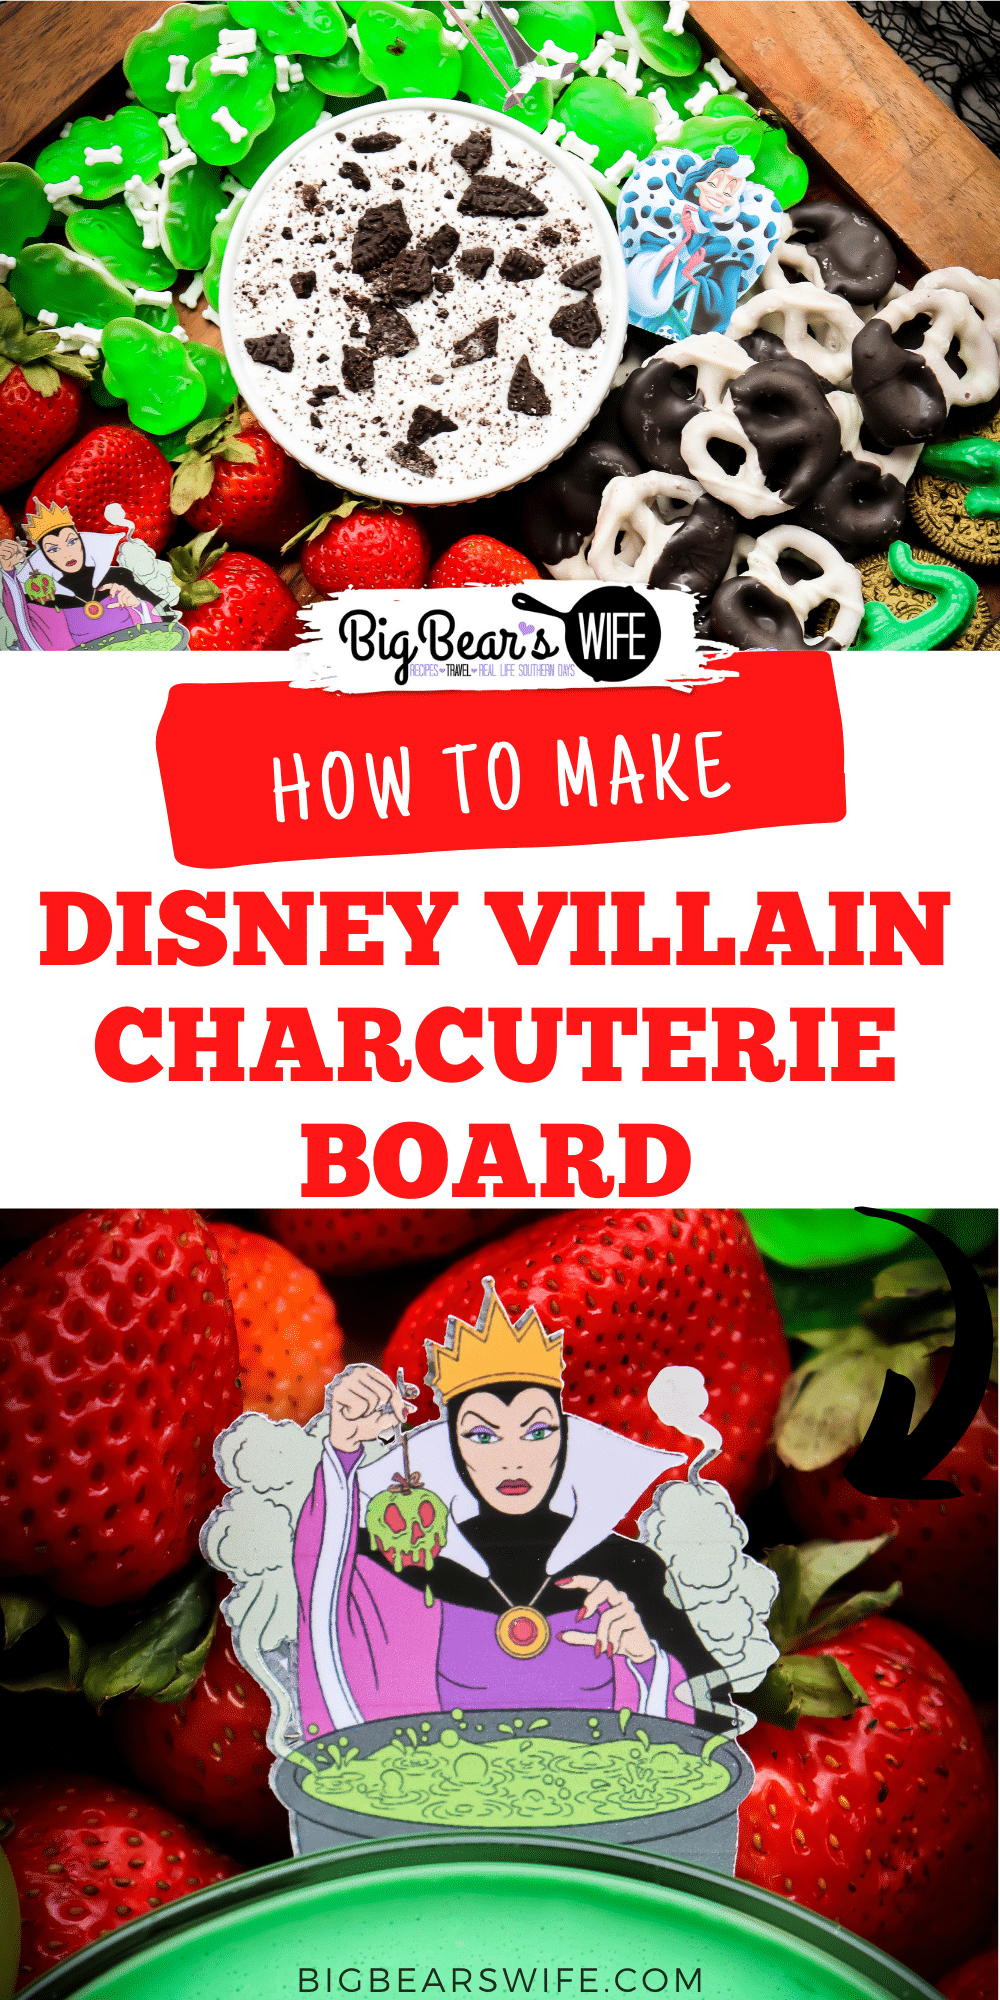 We're celebrating all of the Disney Villains with this Disney Villain Charcuterie Board! It is a fun Disney Snack board to celebrate our favorite Villains for Halloween! via @bigbearswife